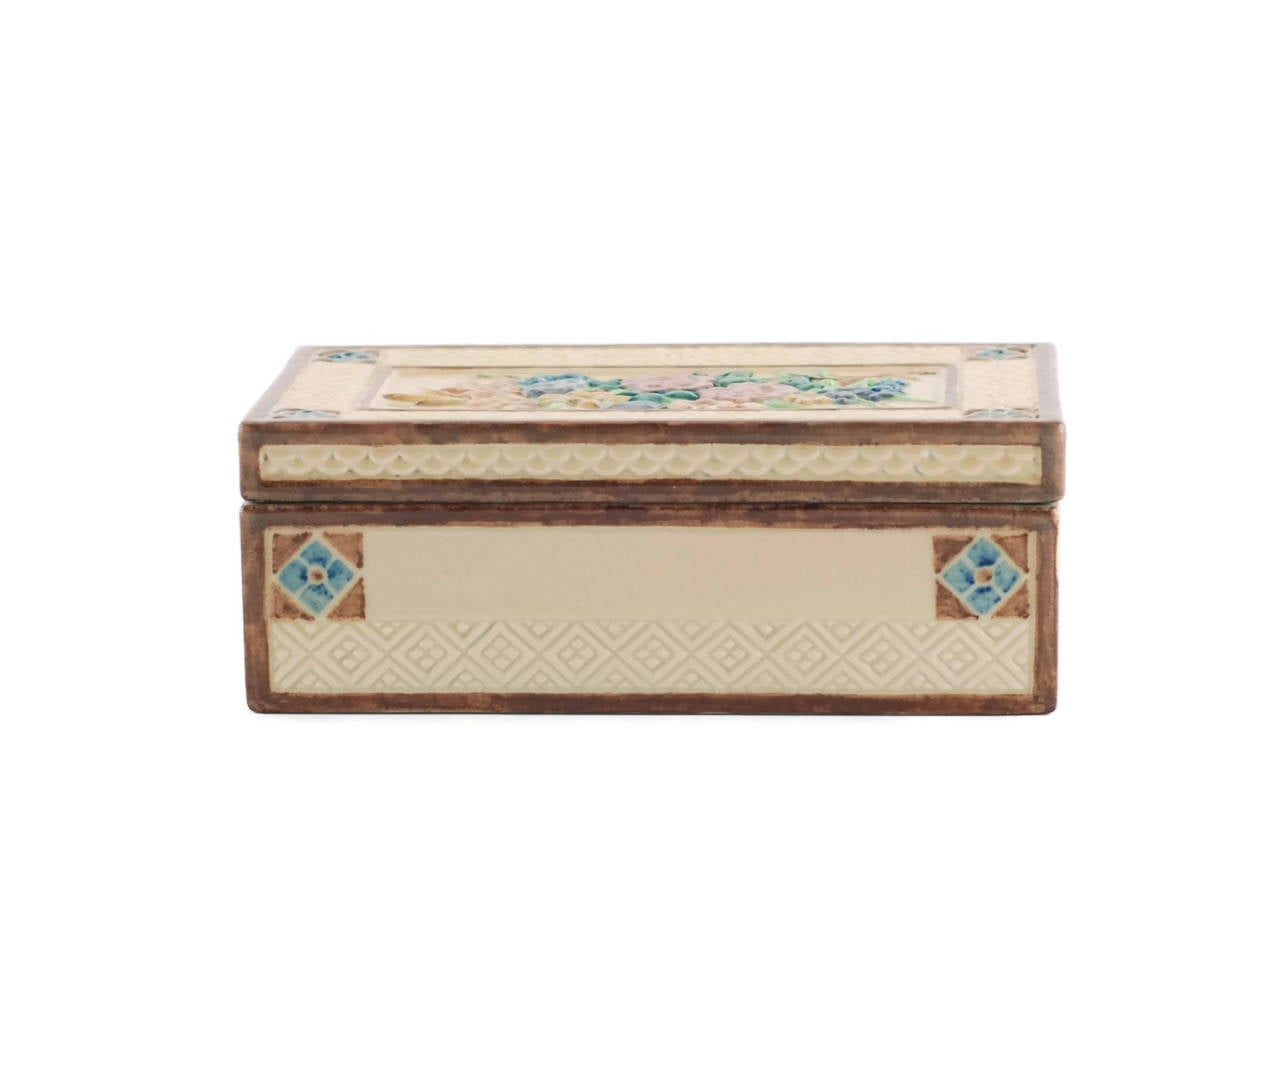 Signed Sara Sax Rookwood Pottery Lidded Rectangular Box In Excellent Condition For Sale In Cincinnati, OH